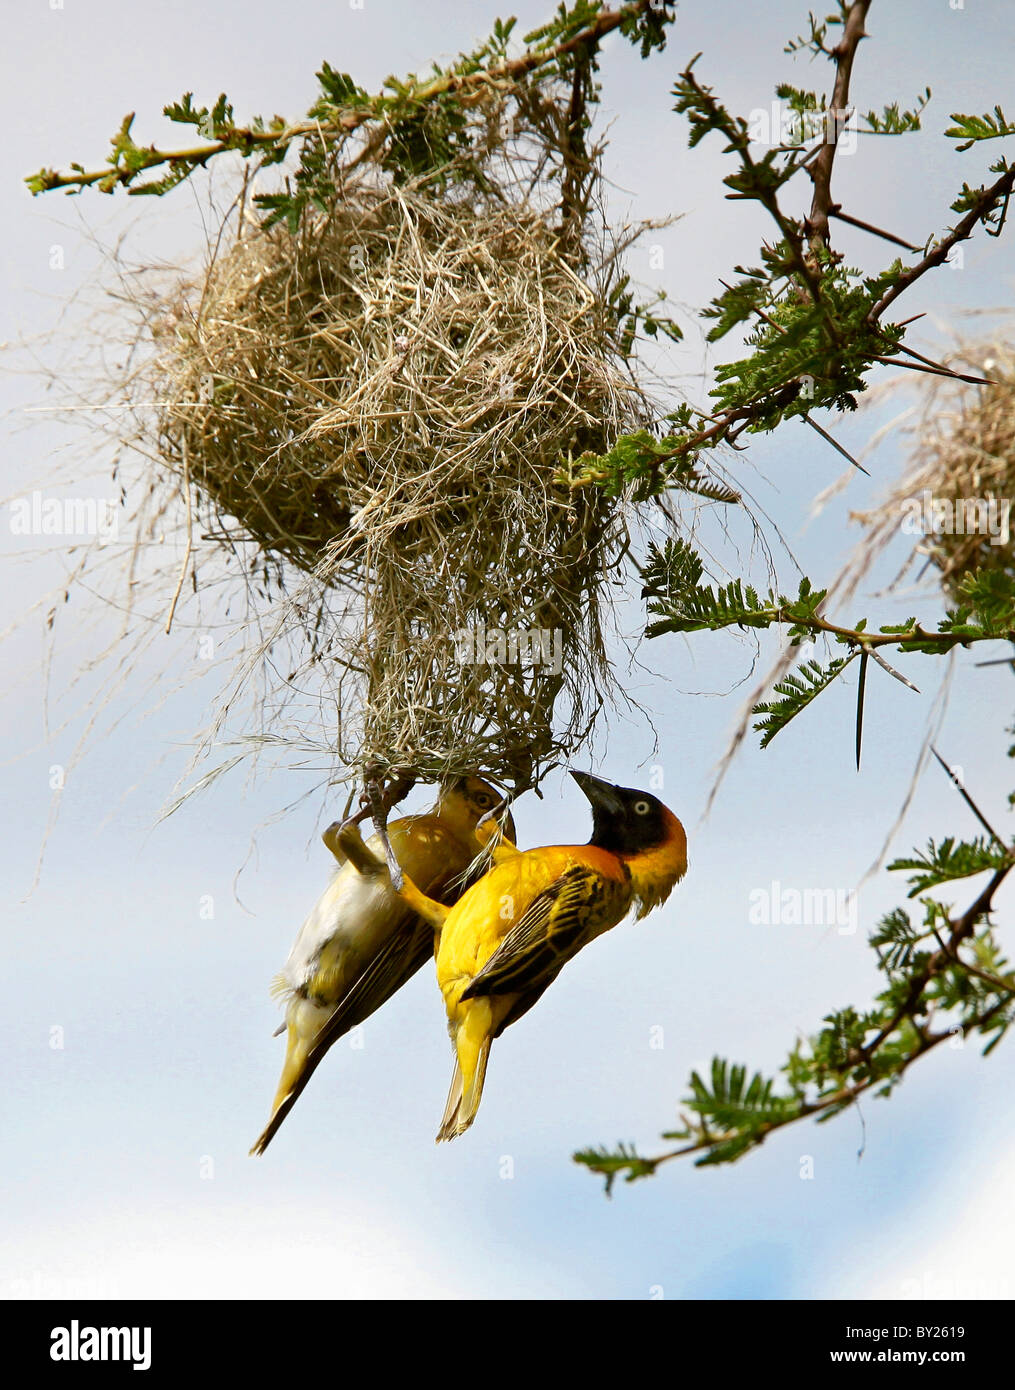 A pair of Lesser Masked weavers build their intricate nest in an acacia tree in Tsavo West National Park during - Stock Image